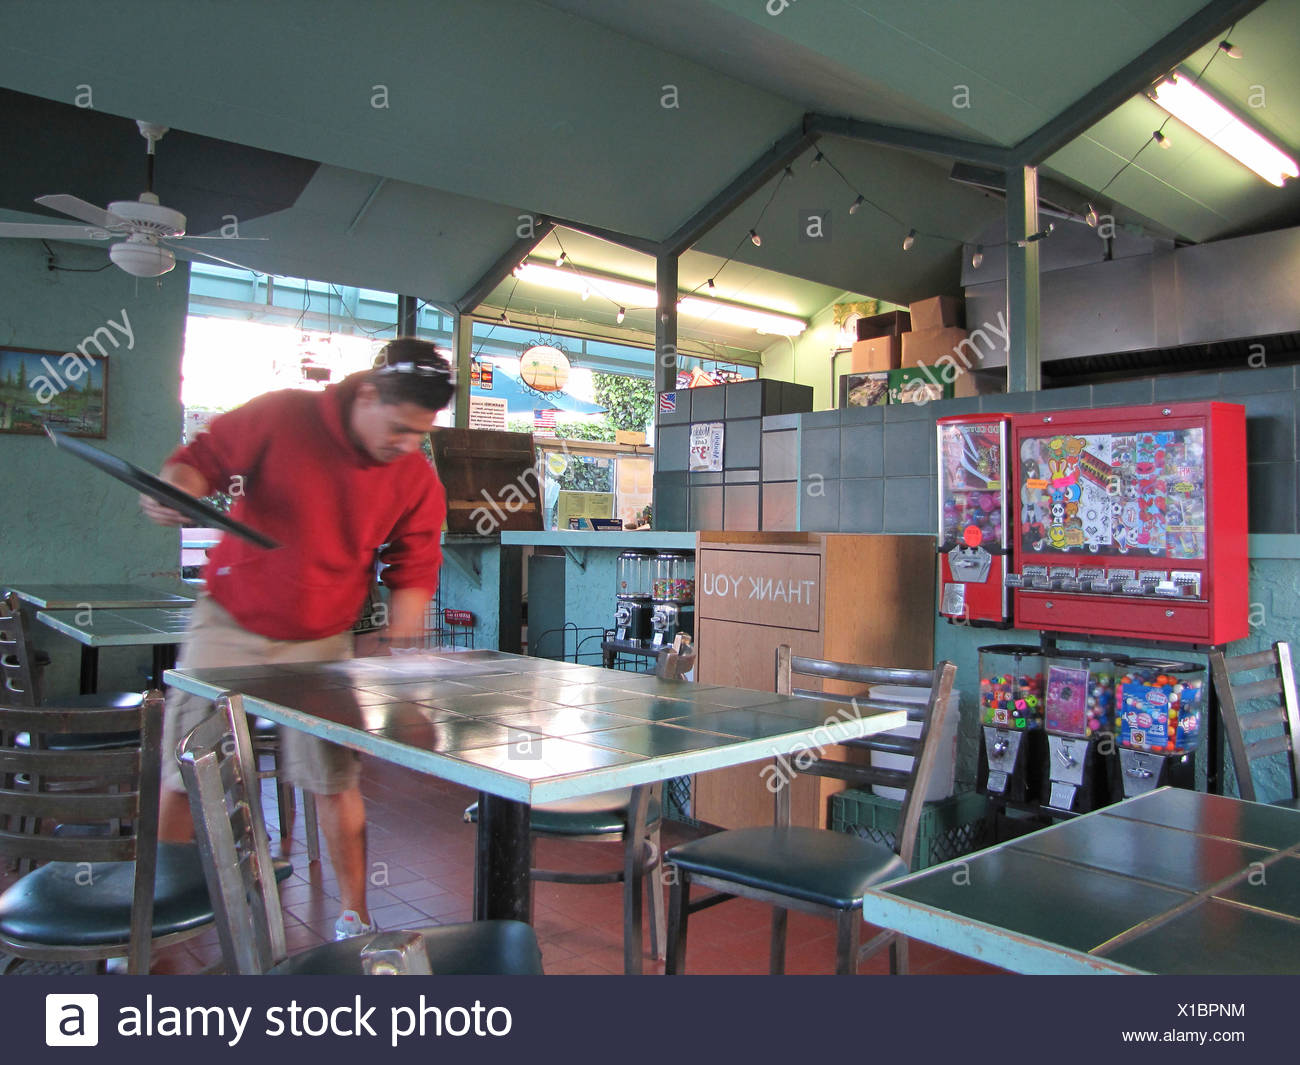 Table de l'homme dans le fast-food américain, chewing-gum machine dans la partie gauche de l'image, USA, California, Santa Cruz Photo Stock